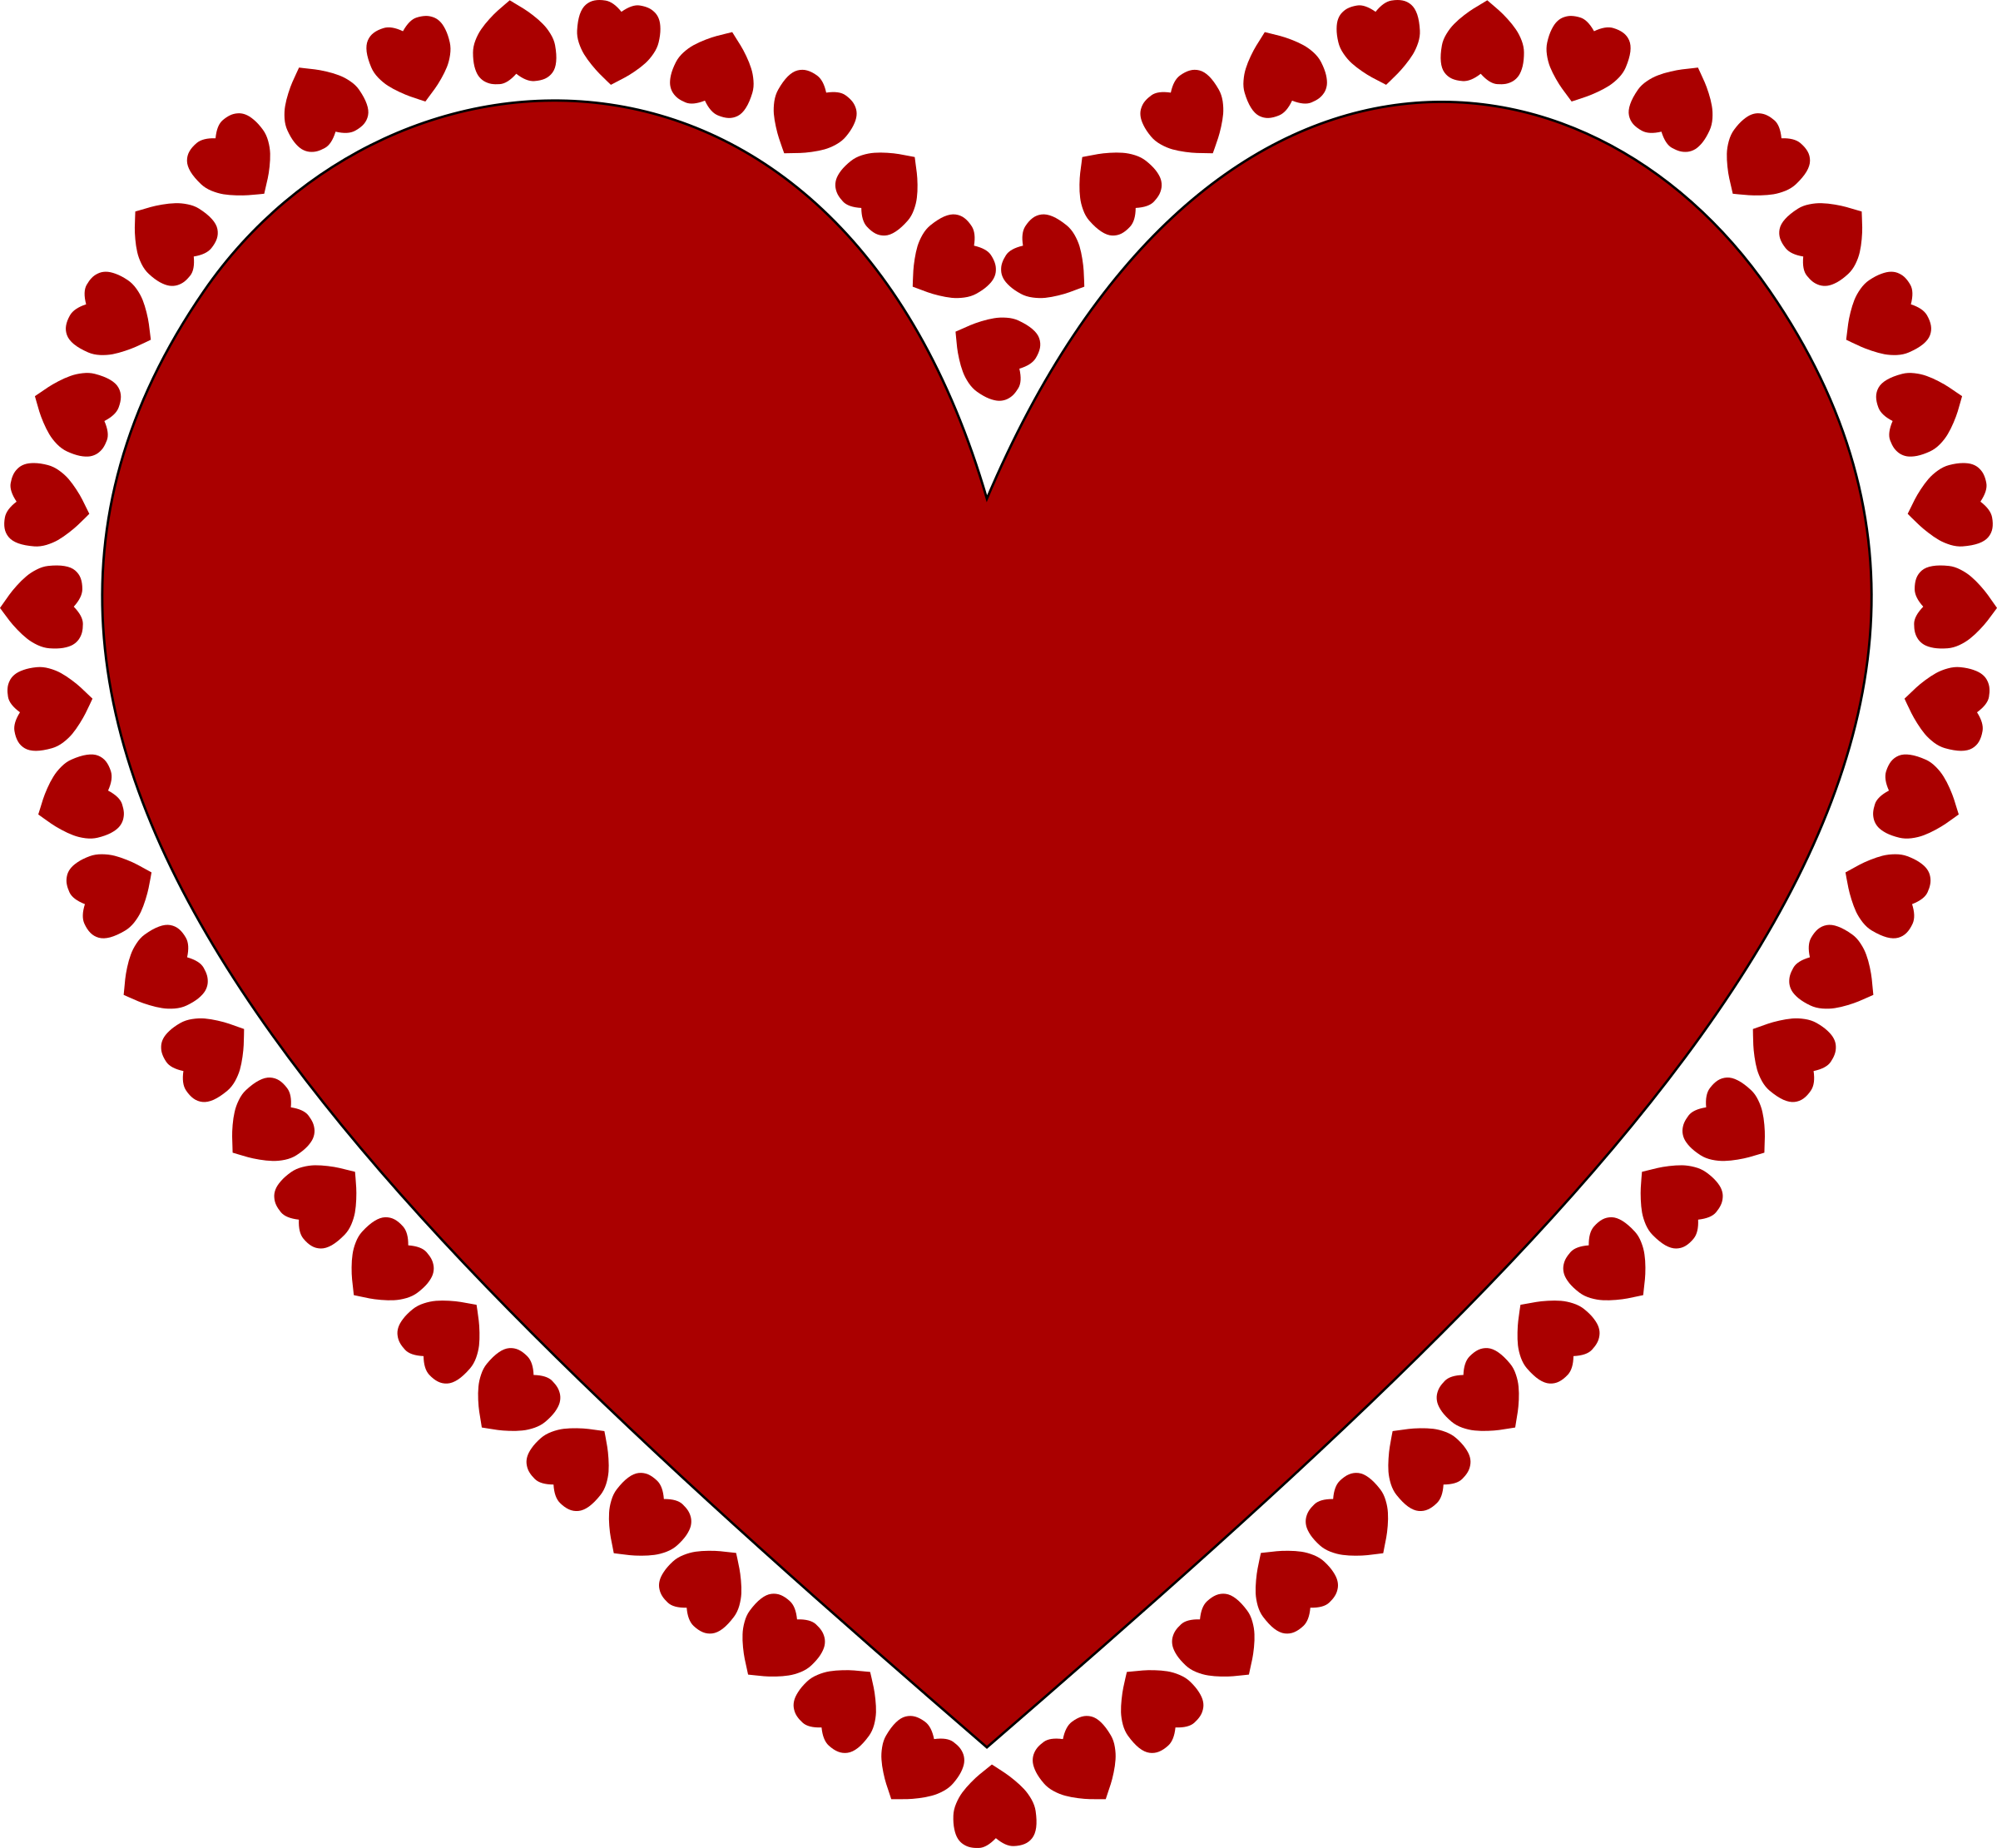 Red Frame Heart Png image #31016